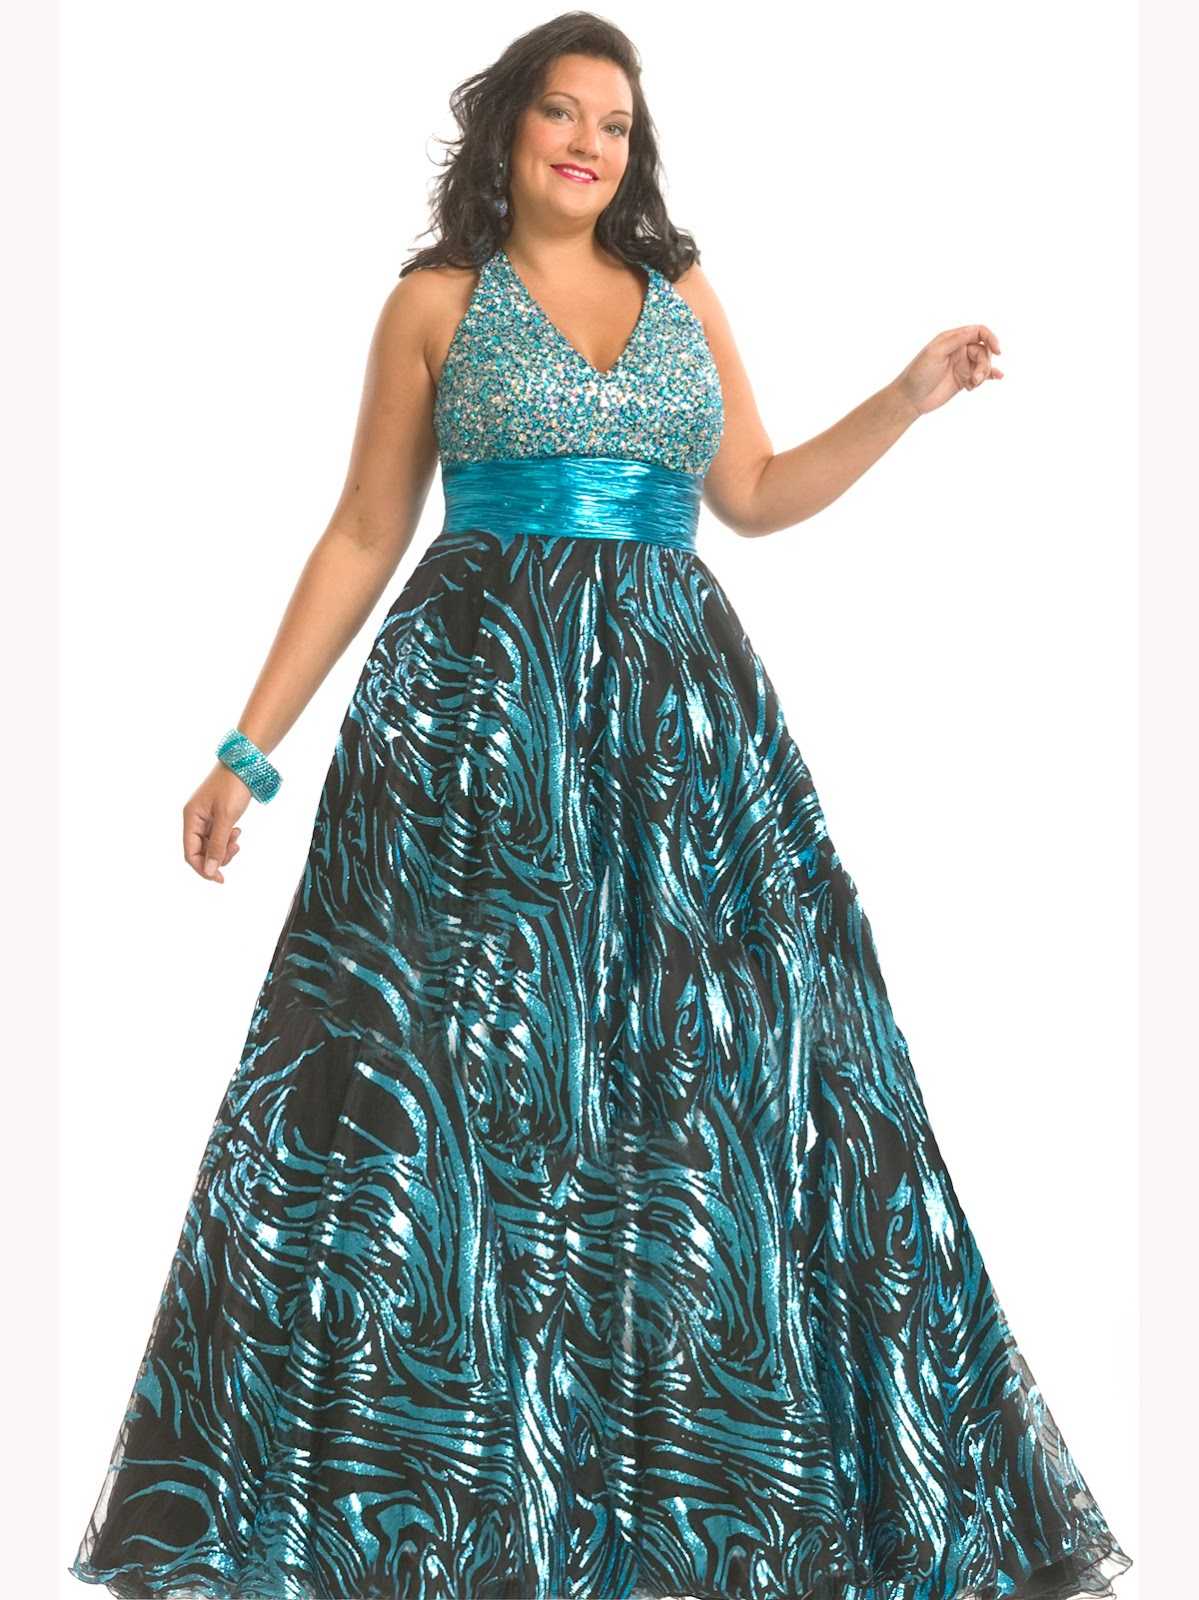 Prom dress stores in louisville ky fashion dresses for for Wedding dresses in louisville ky